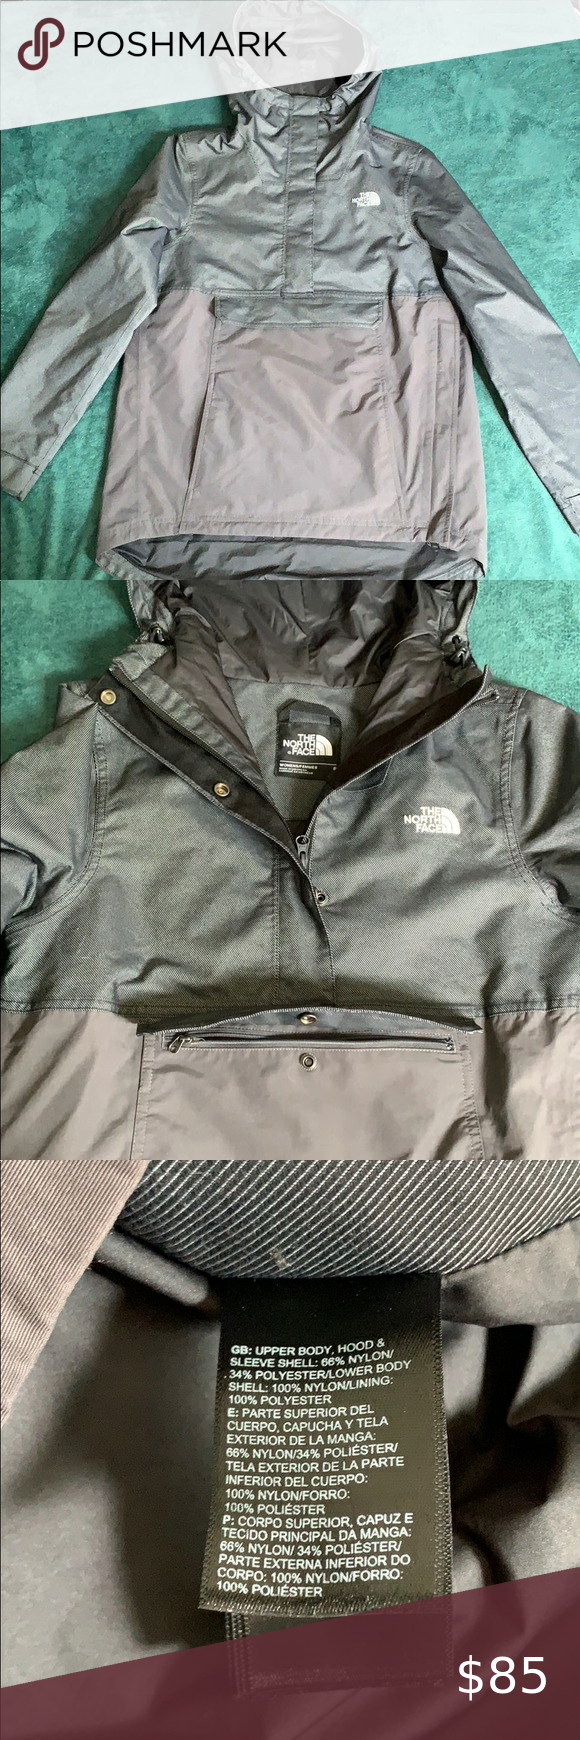 Used The North Face Jacket North Face Jacket The North Face Jackets [ 1740 x 580 Pixel ]